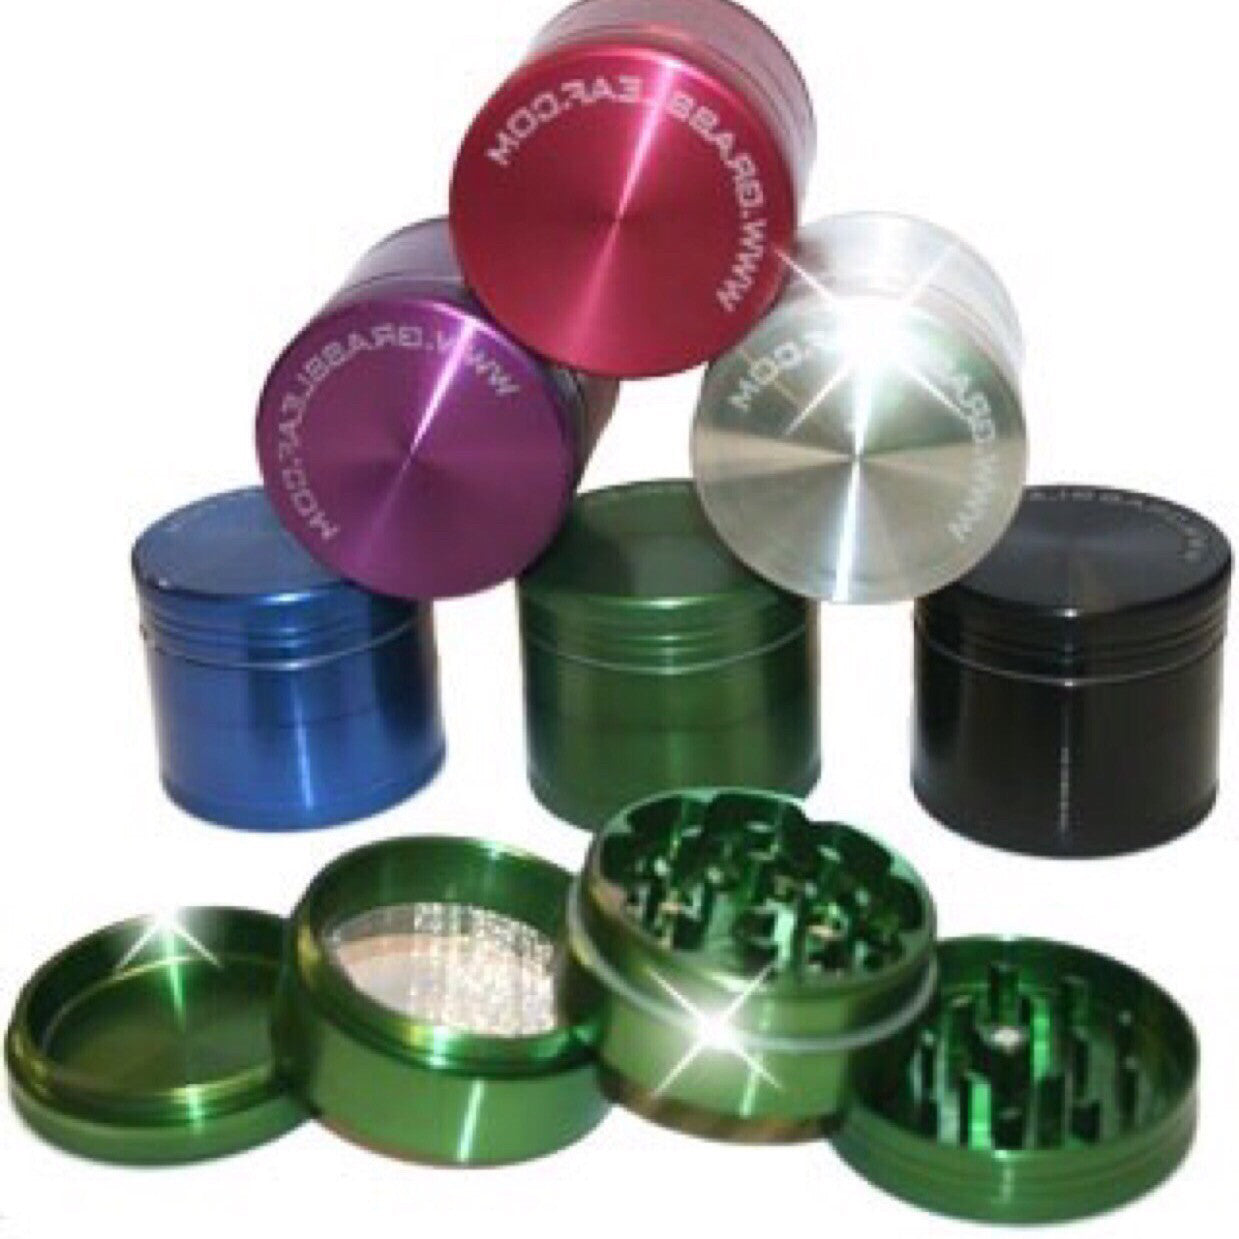 4 PART GRINDER 65MM GREEN